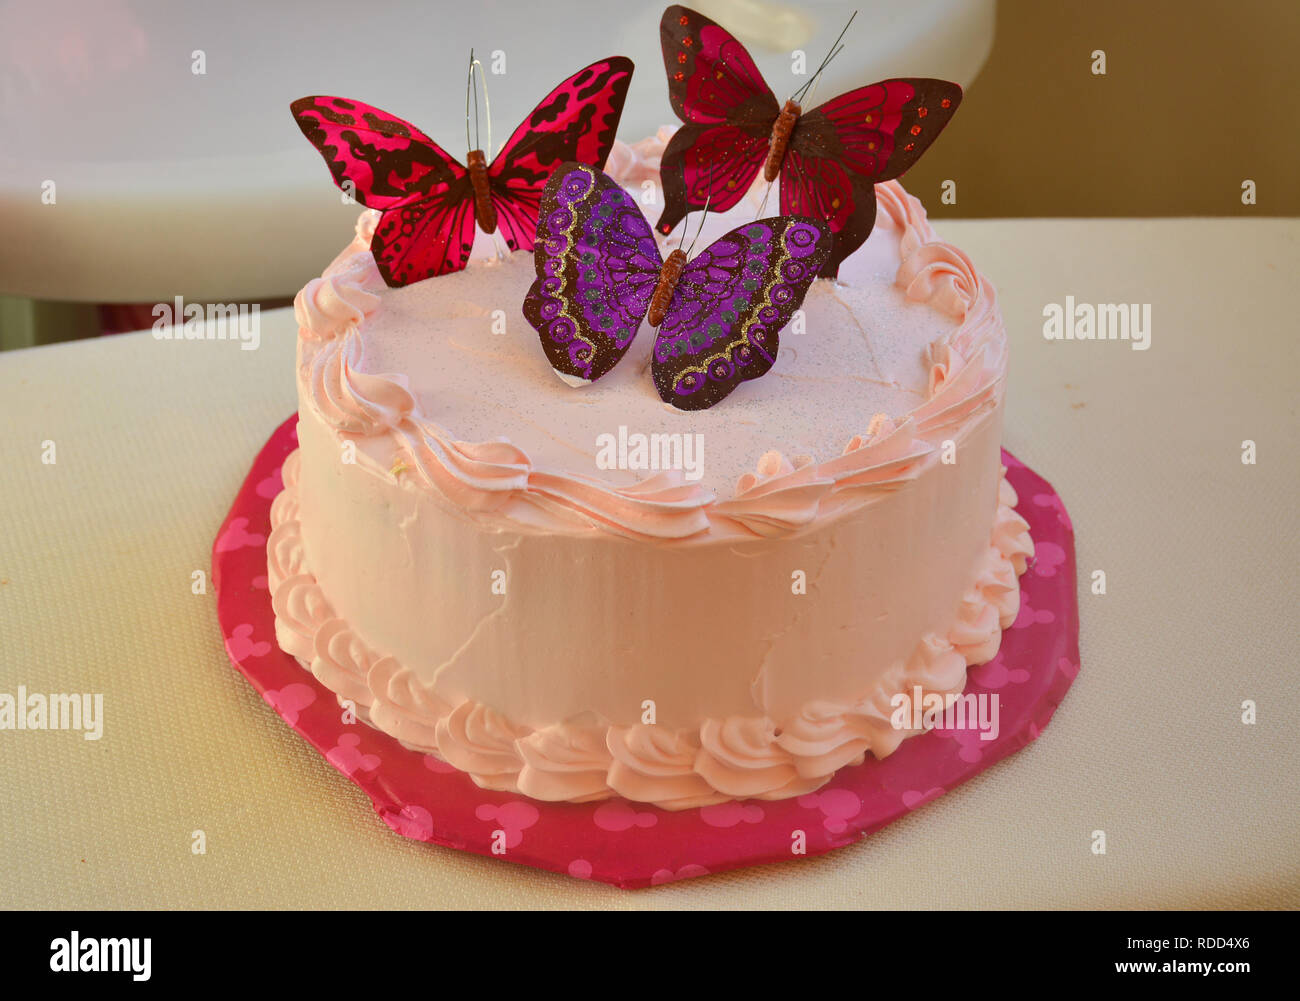 Outstanding Butterfly Birthday Cake Stock Photos Butterfly Birthday Cake Personalised Birthday Cards Petedlily Jamesorg